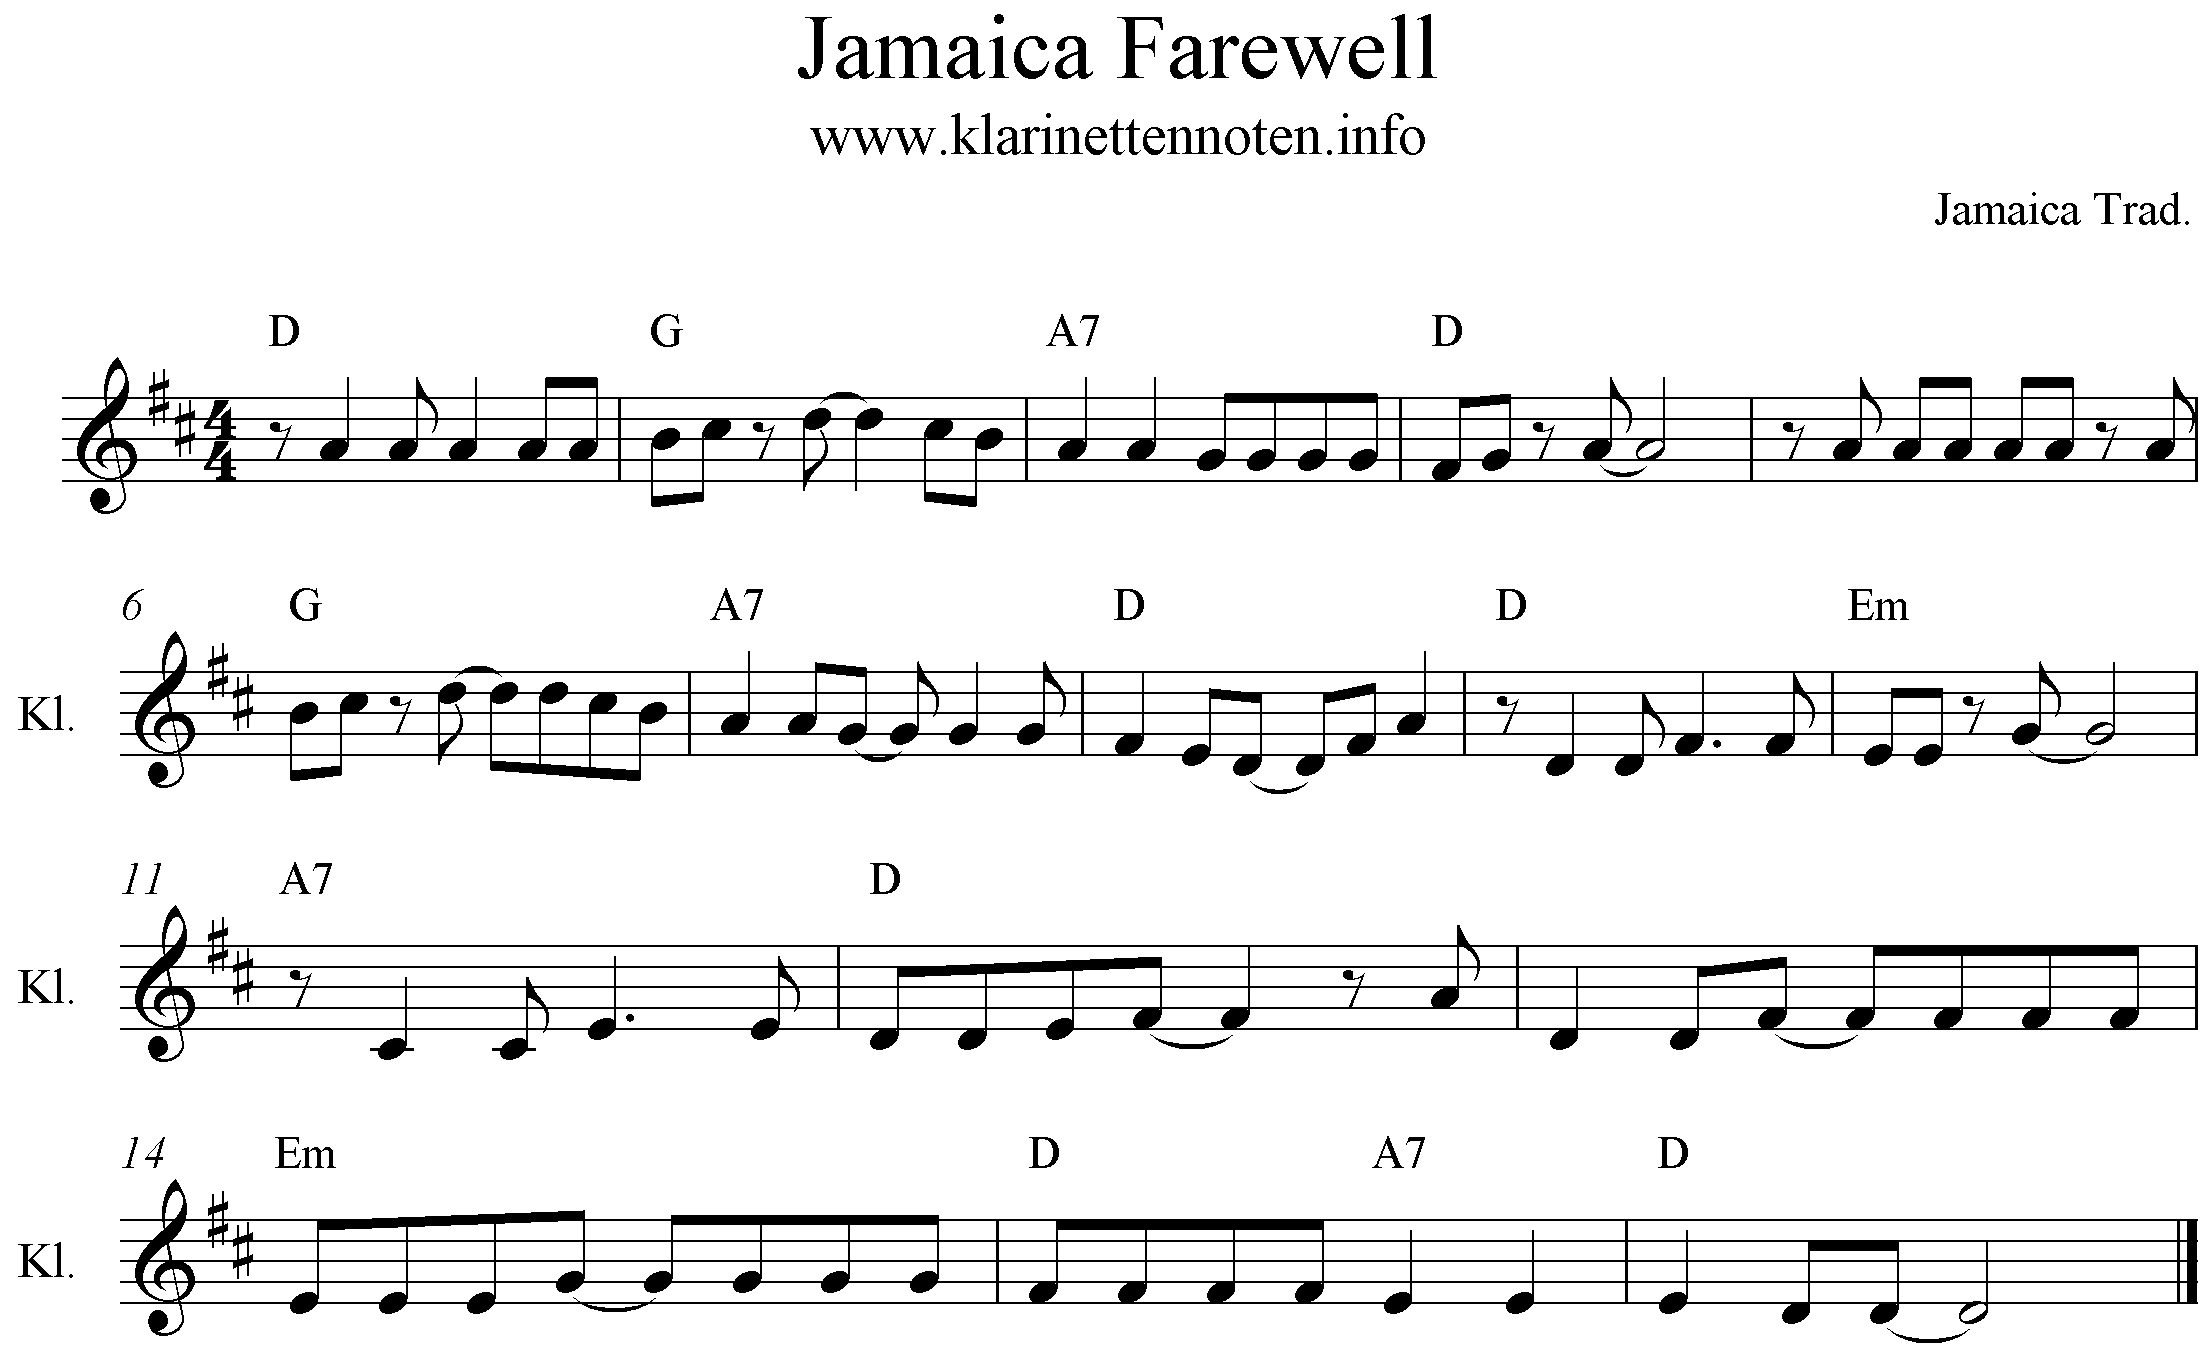 sheetmusic Jamaica Farewell, D-Dur, D-Major, Clarinet